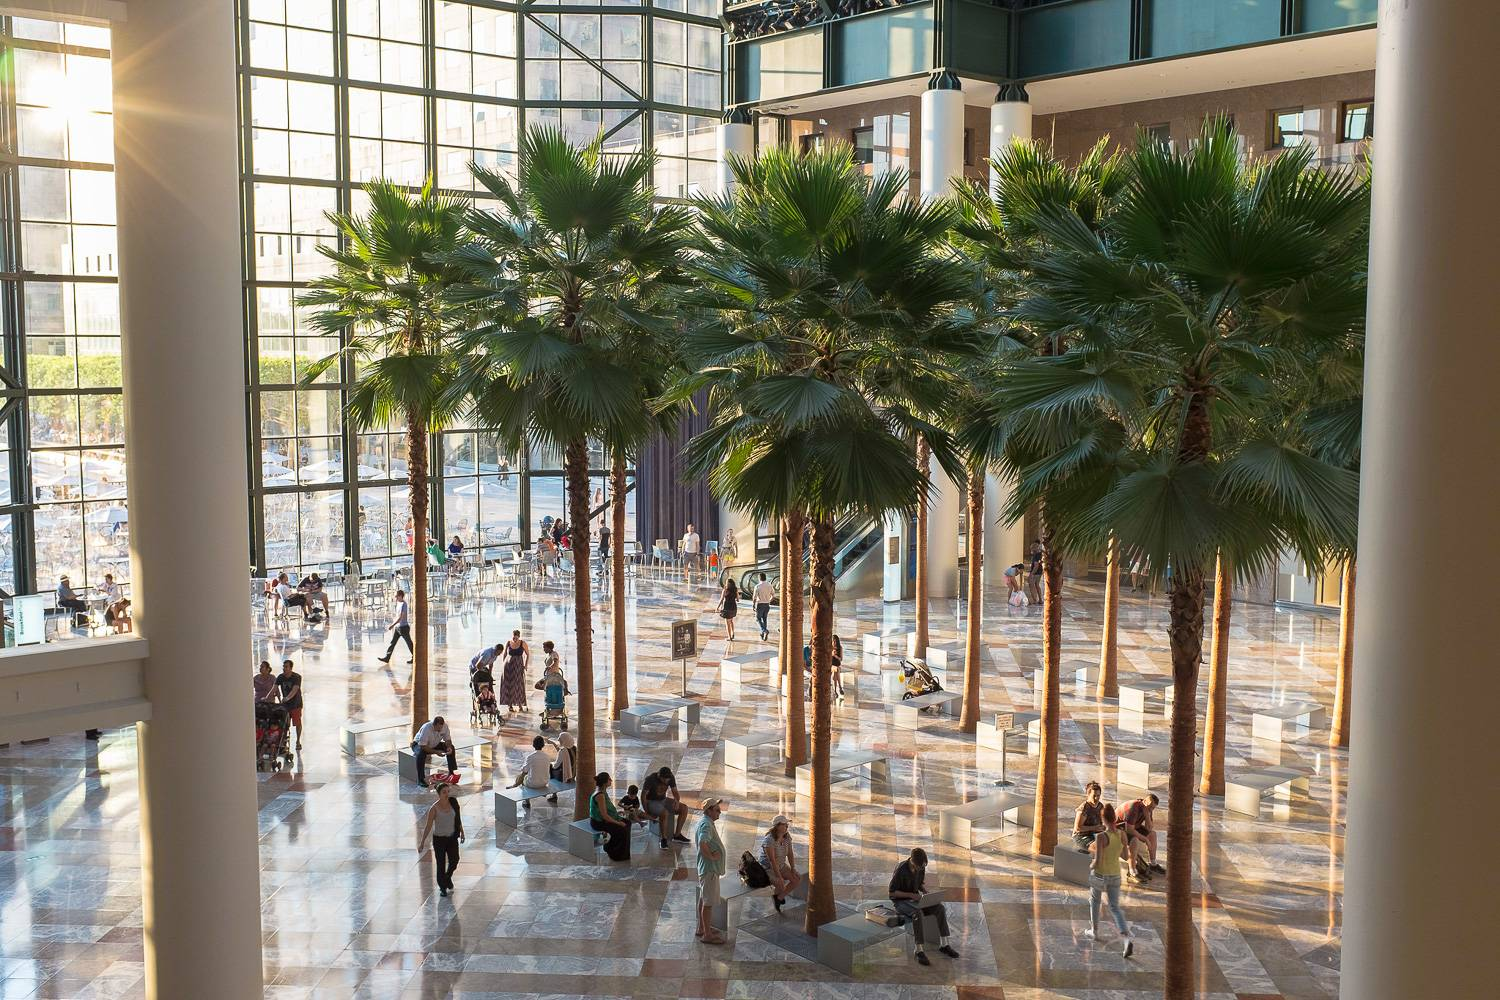 Image of the interior of the Winter Garden Atrium with palm trees.